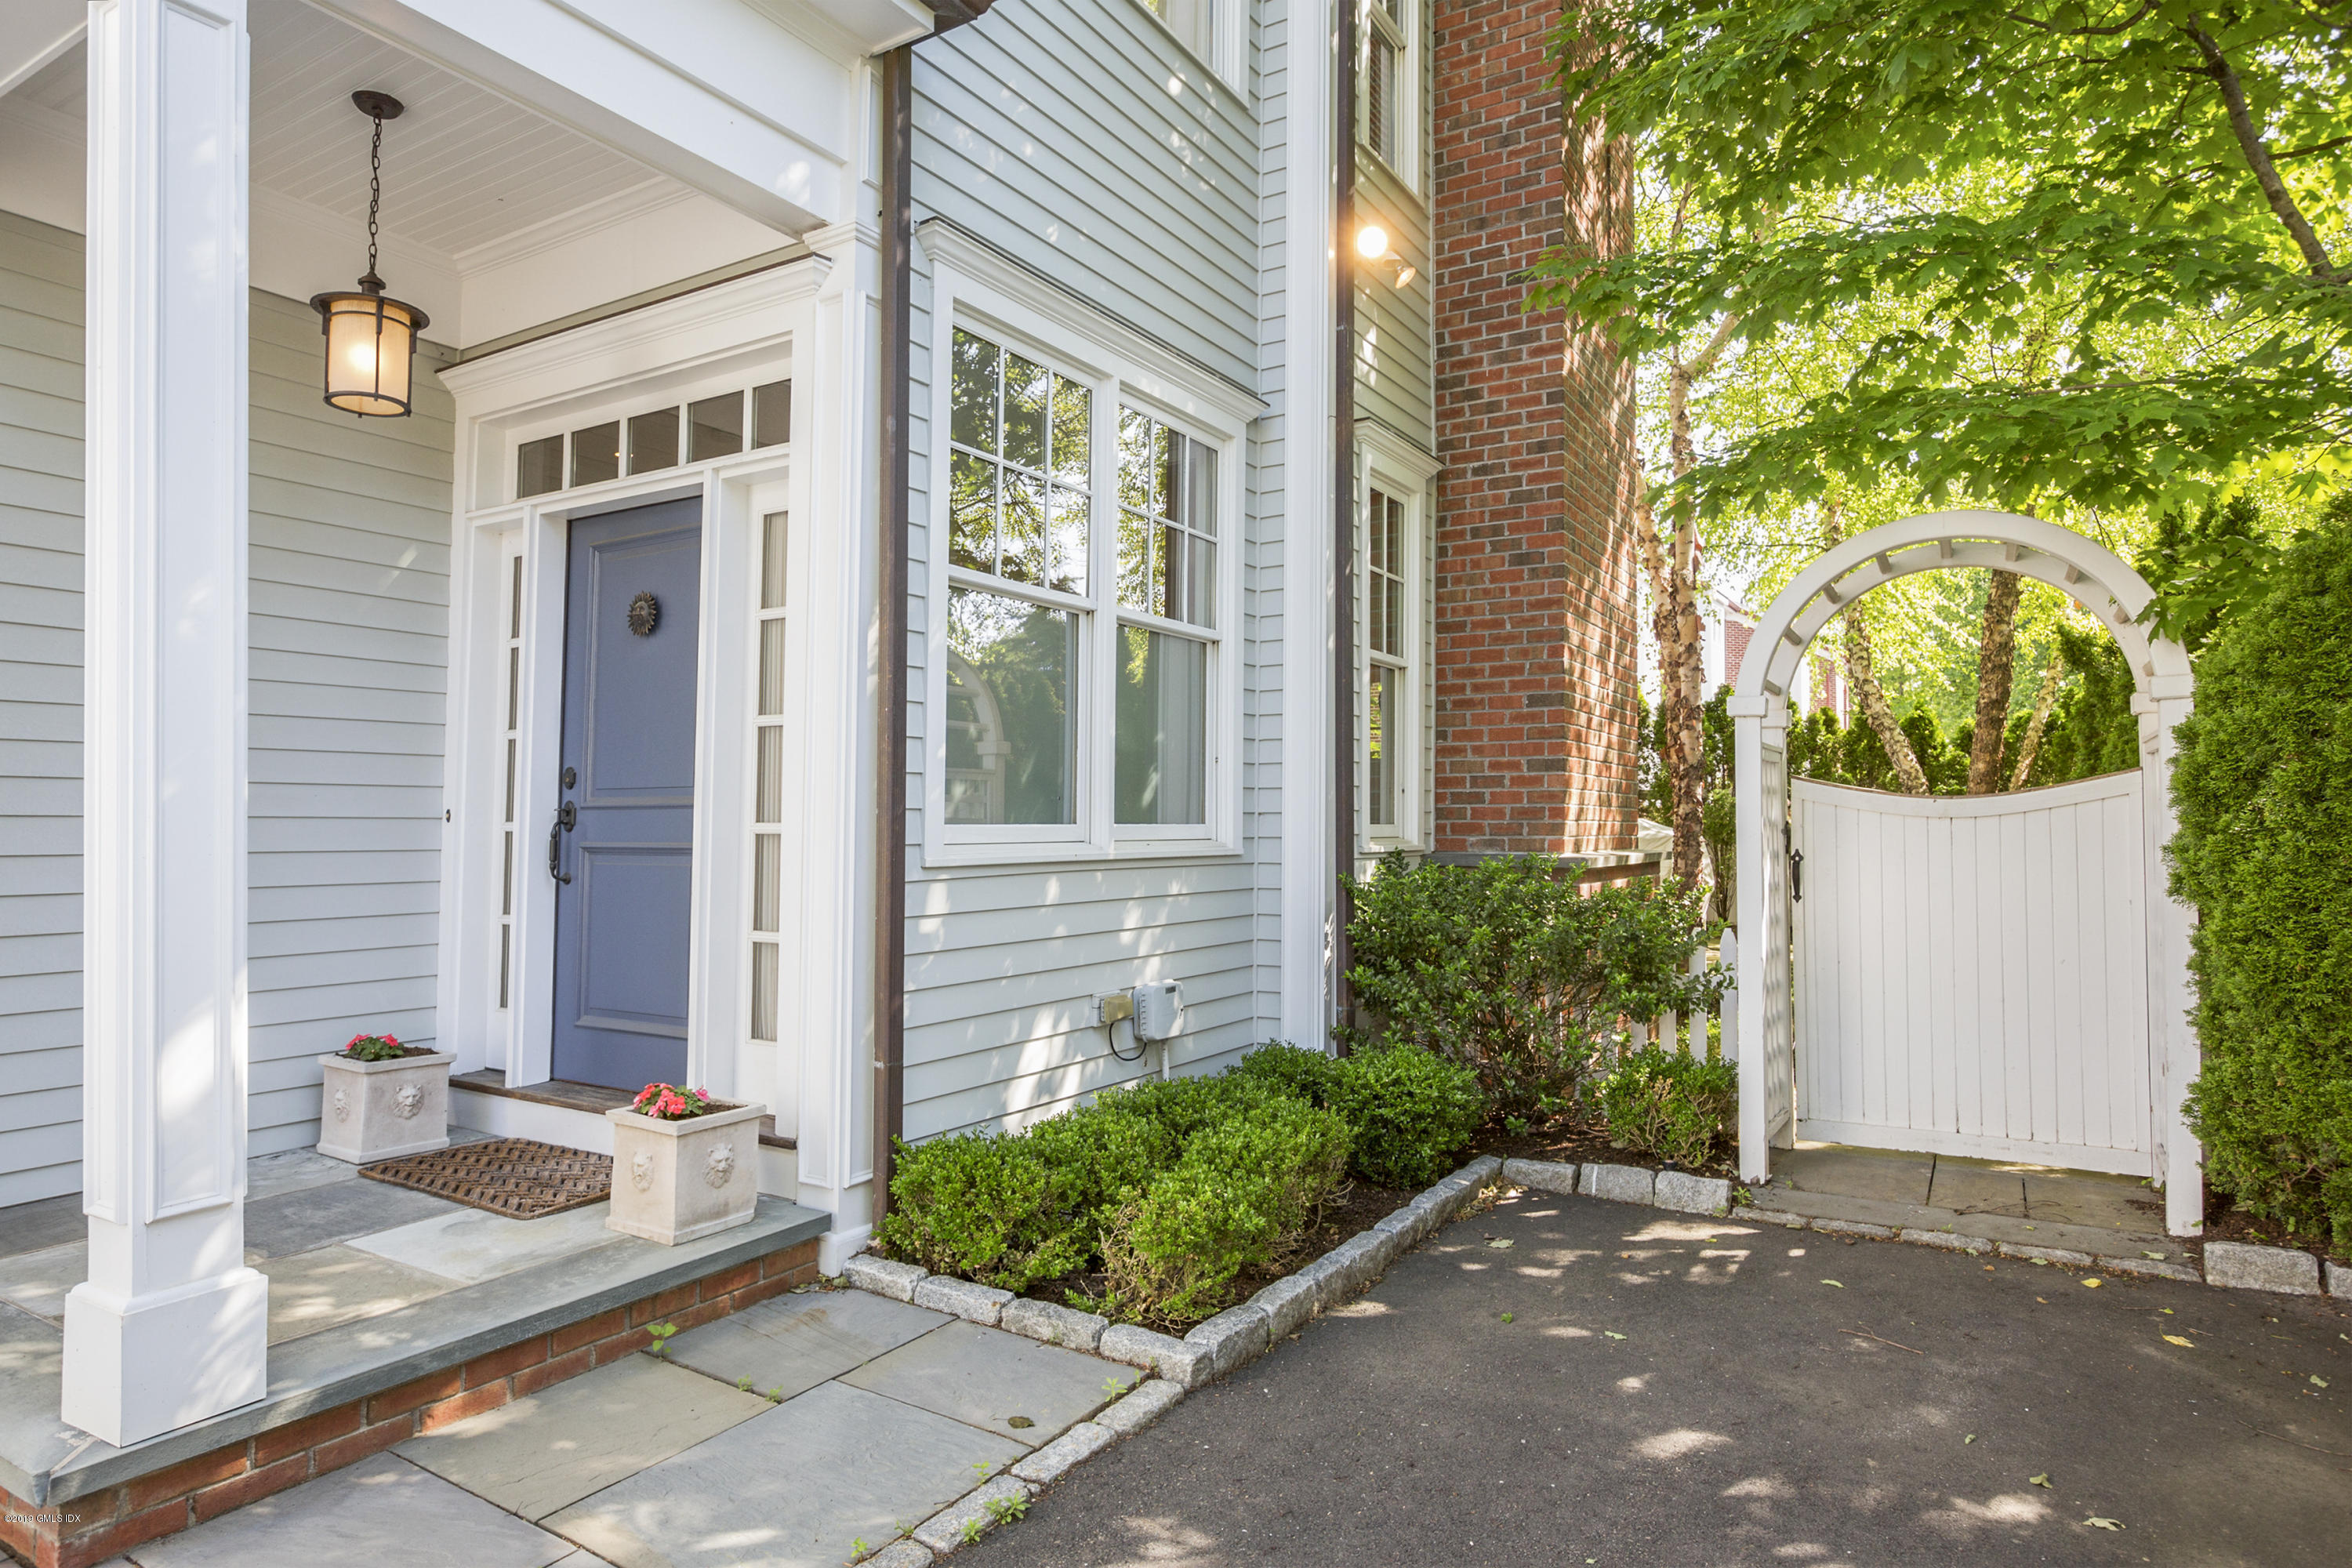 55 Church Street, B, Greenwich, CT 06830